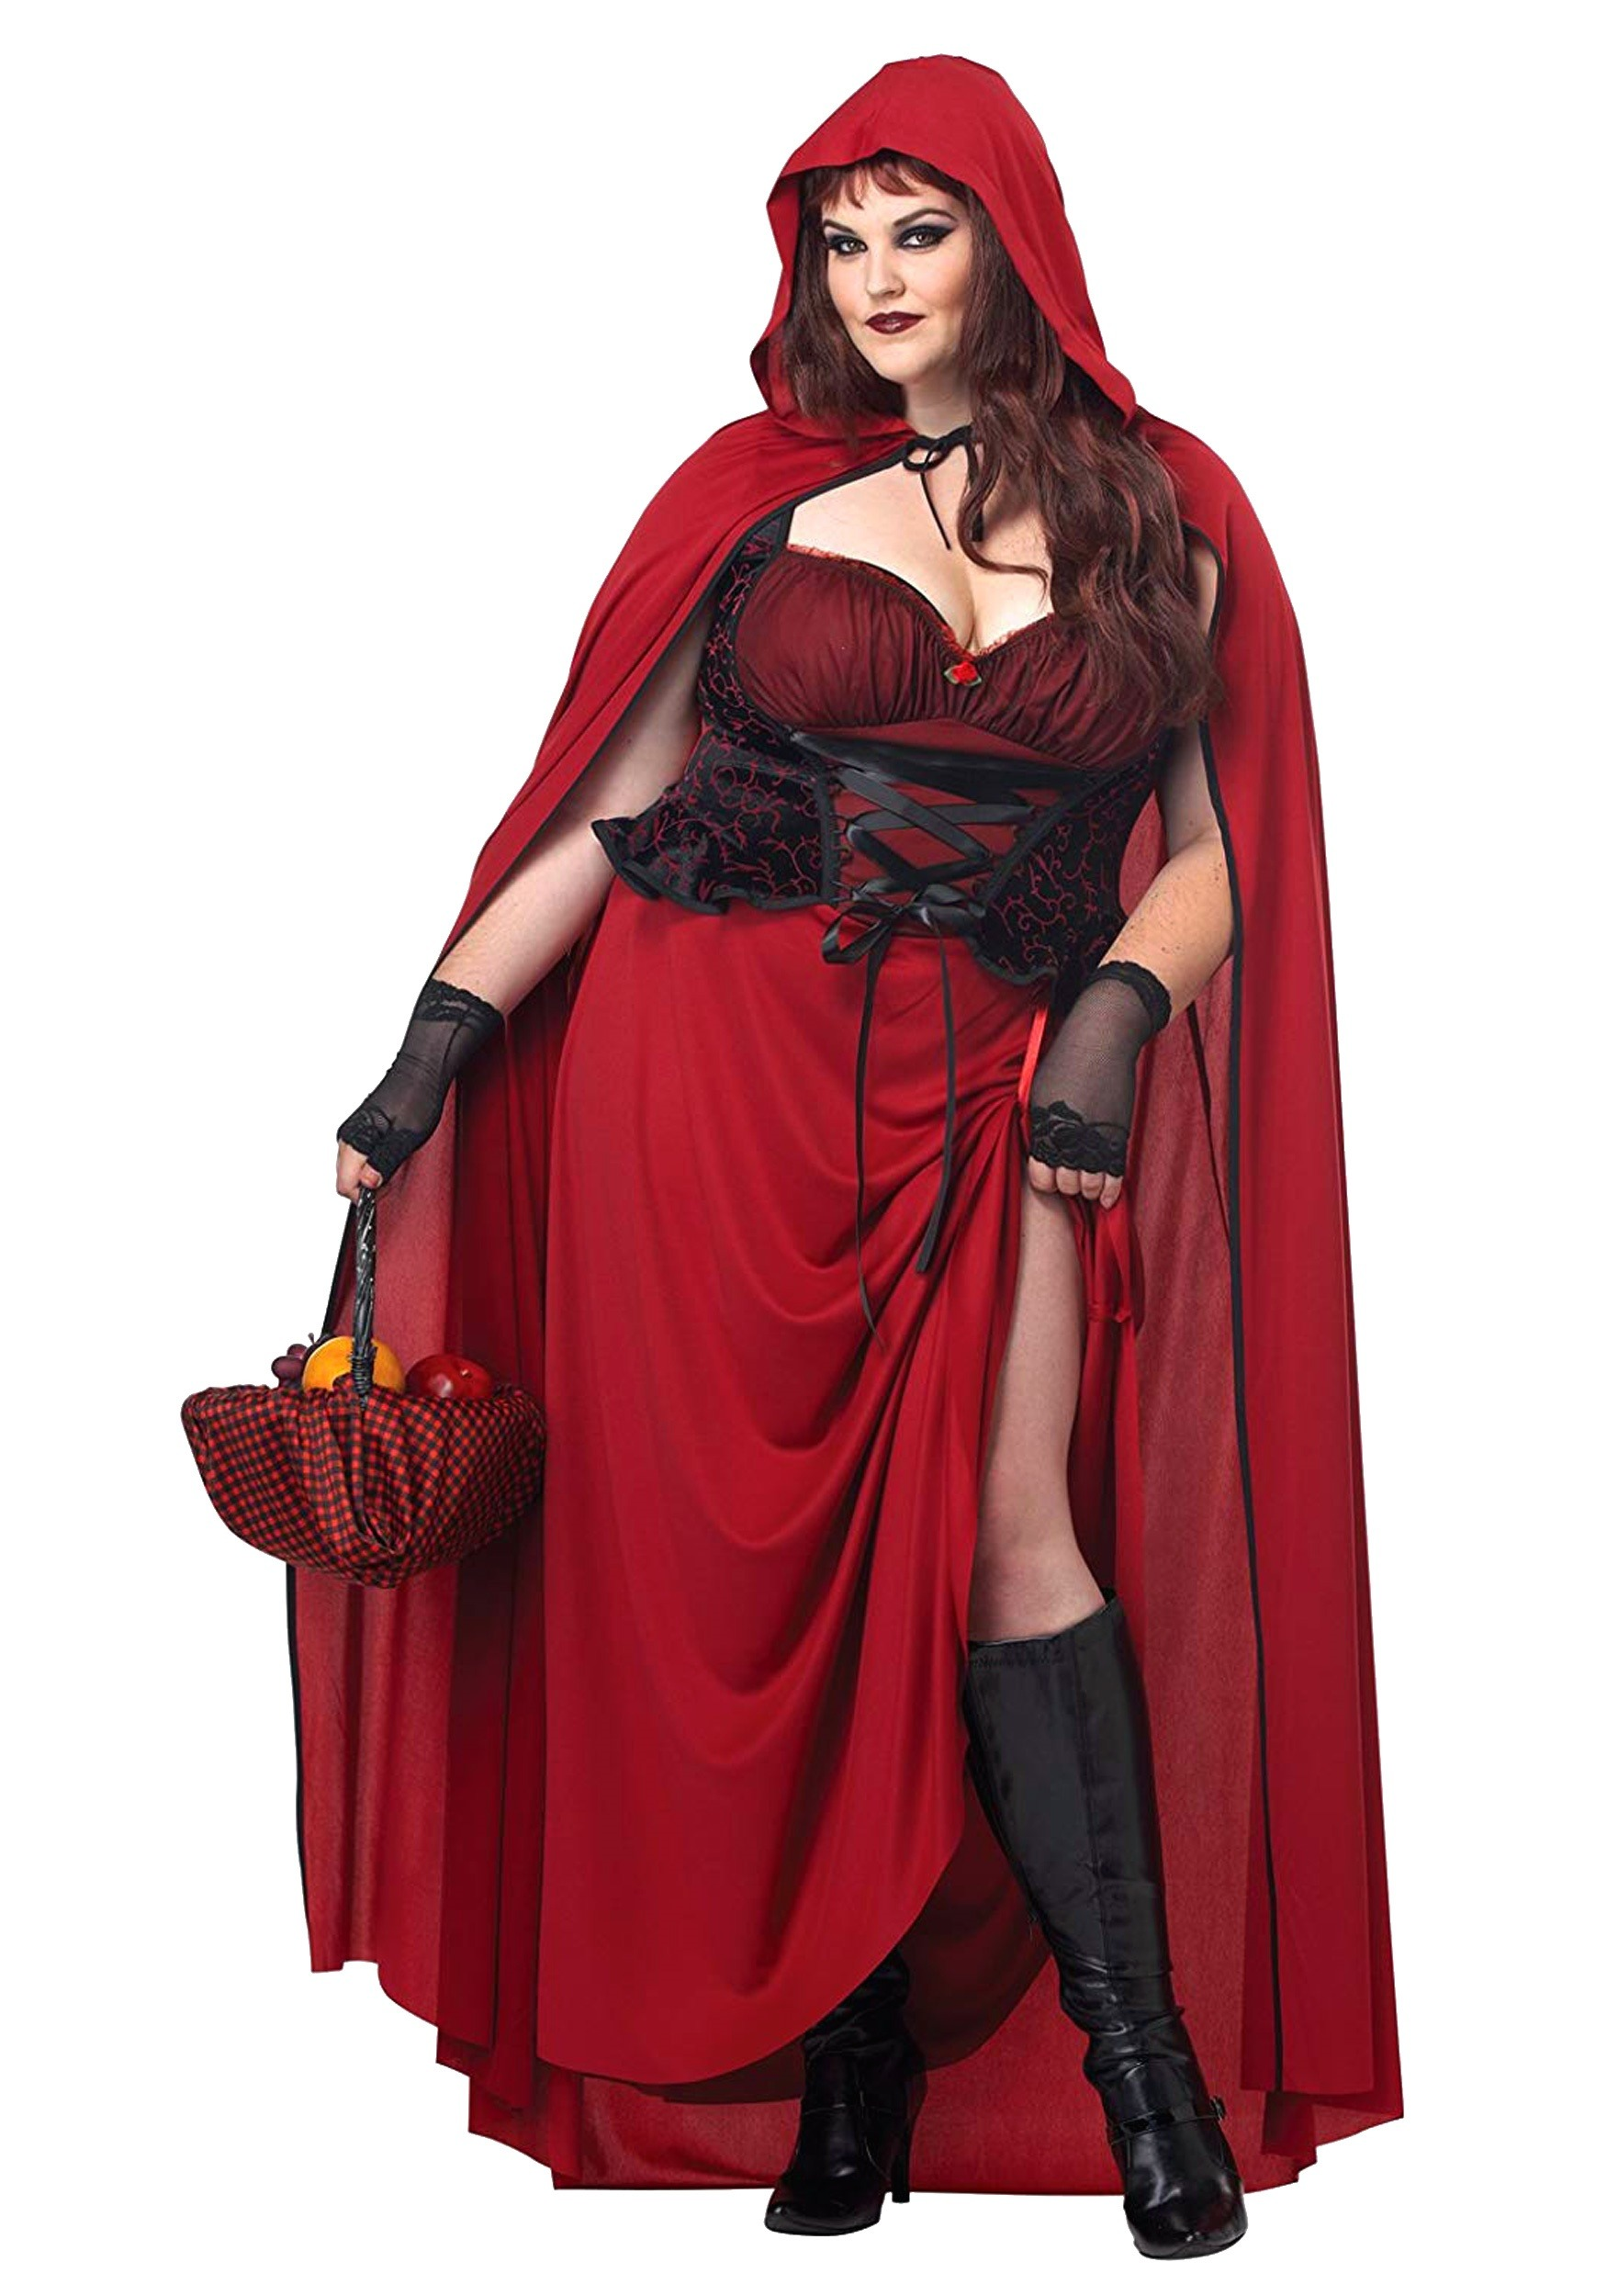 Little Red Riding Hood Costumes - HalloweenCostumes.com